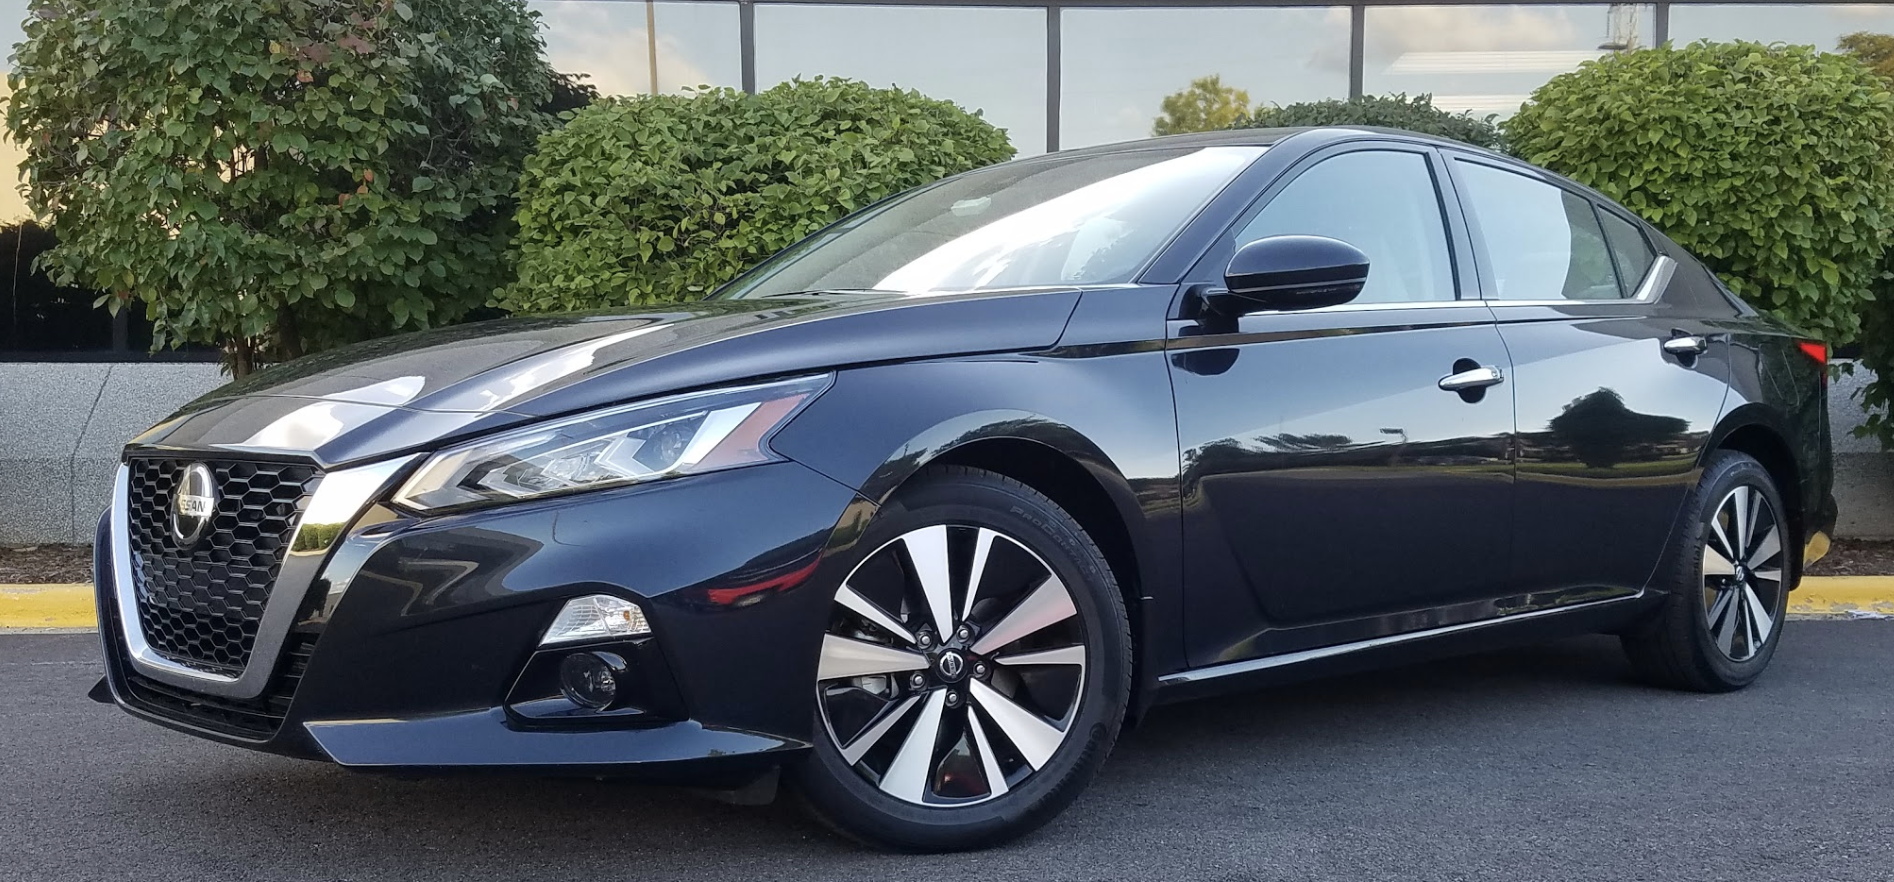 2020 Nissan Altima Sl Awd The Daily Drive Consumer Guide